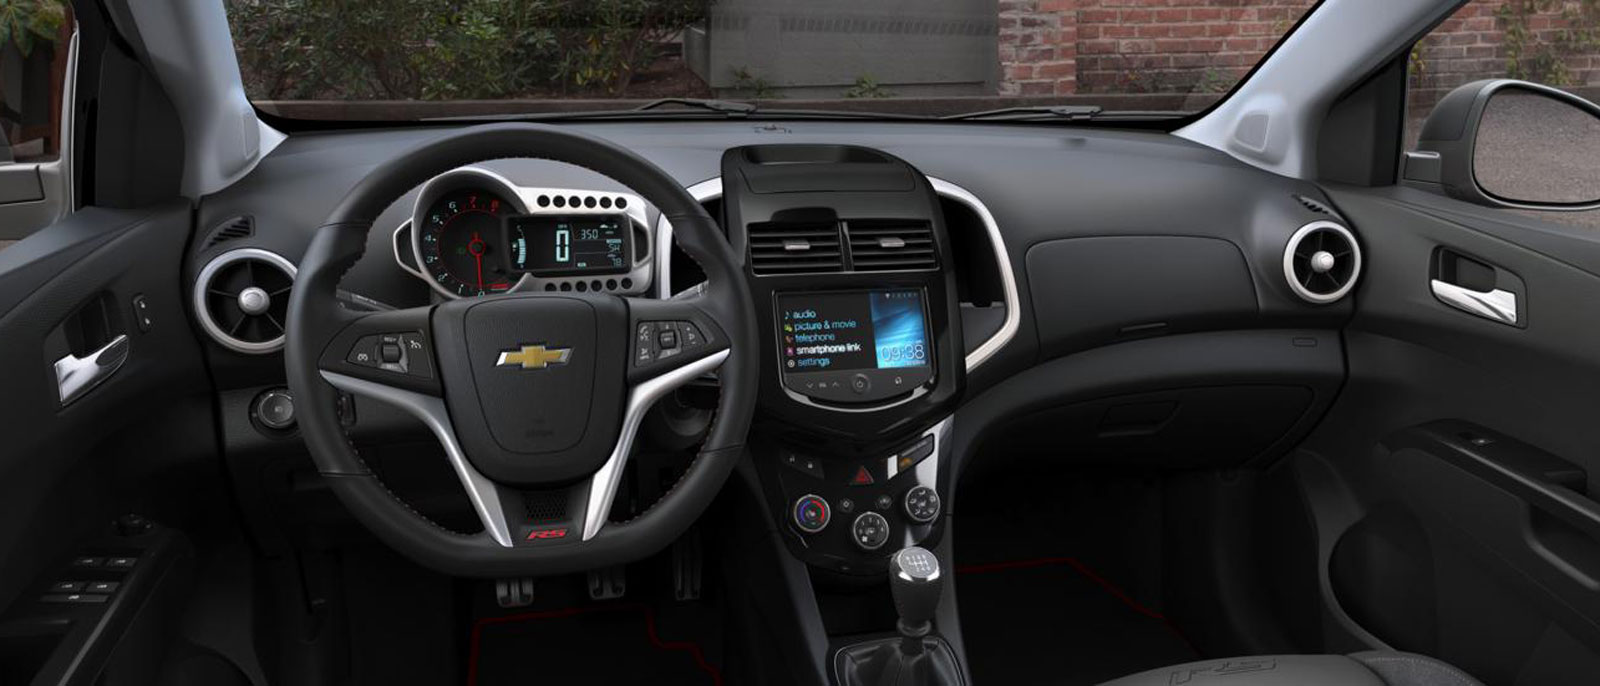 New 2017 chevrolet sonic from patsy lou chevrolet for 2017 chevrolet sonic sedan interior